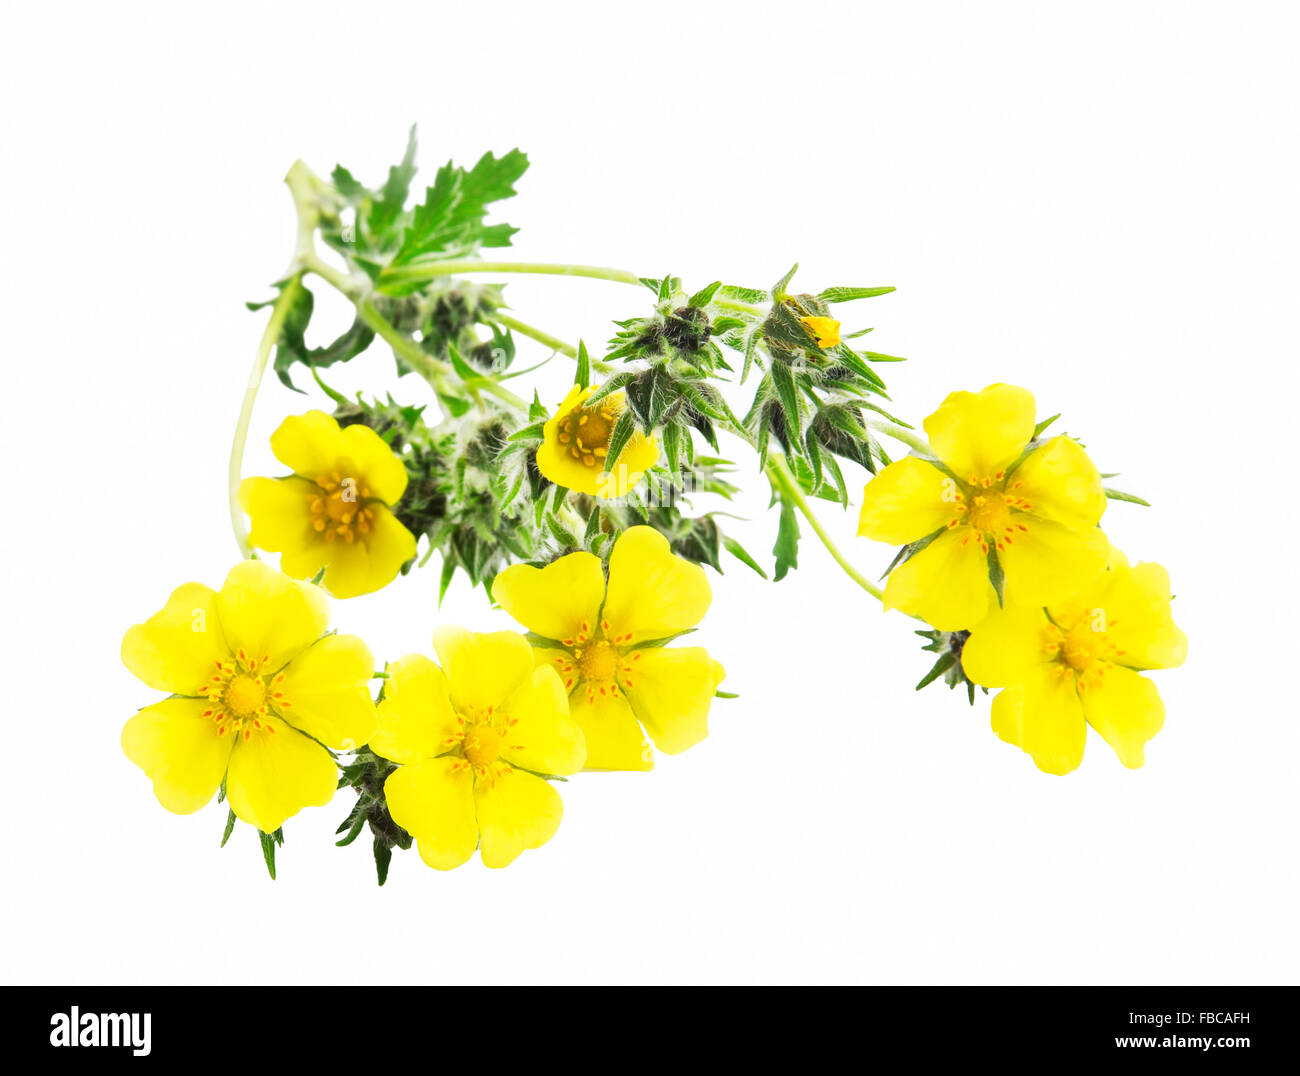 White cinquefoil root: use in traditional medicine 49